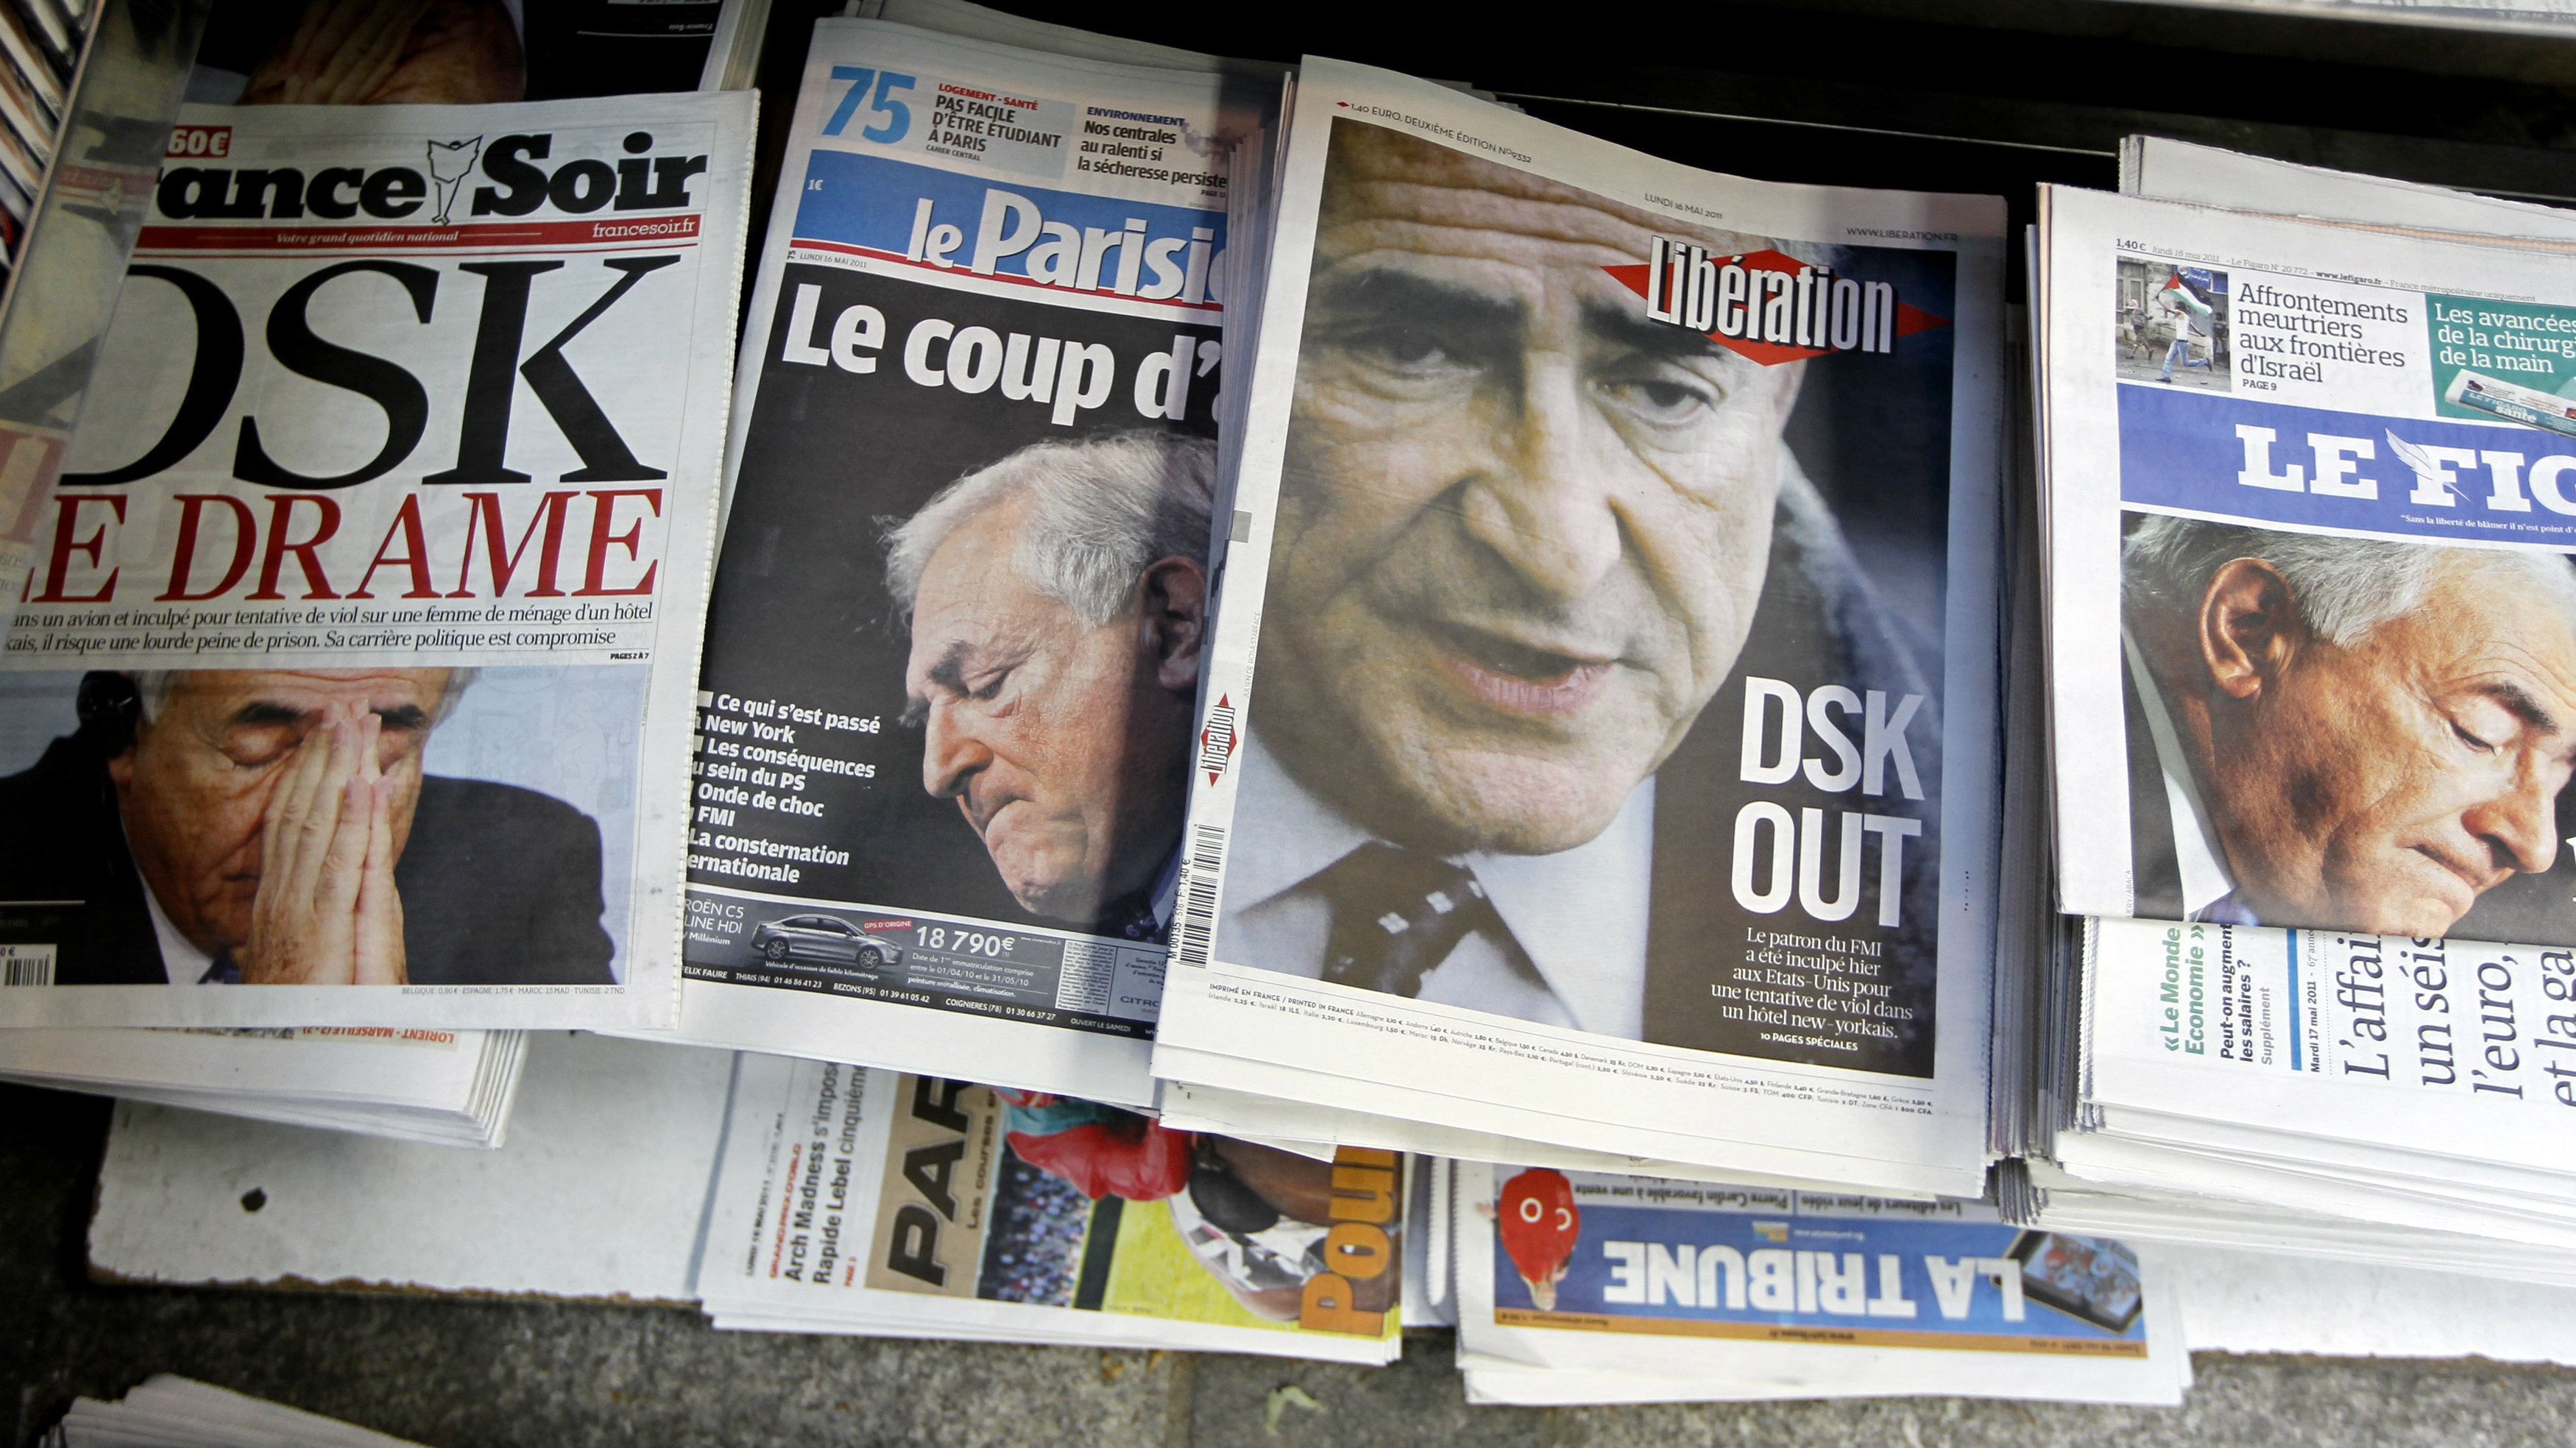 View of newspapers front pages about International Monetary Fund (IMF) chief Dominique Strauss-Kahn's arrest, at a central kiosk in Paris May 16, 2011. The arrest of IMF chief Dominique Strauss-Kahn on sexual assault charges has plunged France's Socialists into turmoil and thrown wide open the race for the presidency. REUTERS/Charles Platiau (FRANCE - Tags: POLITICS CRIME LAW)